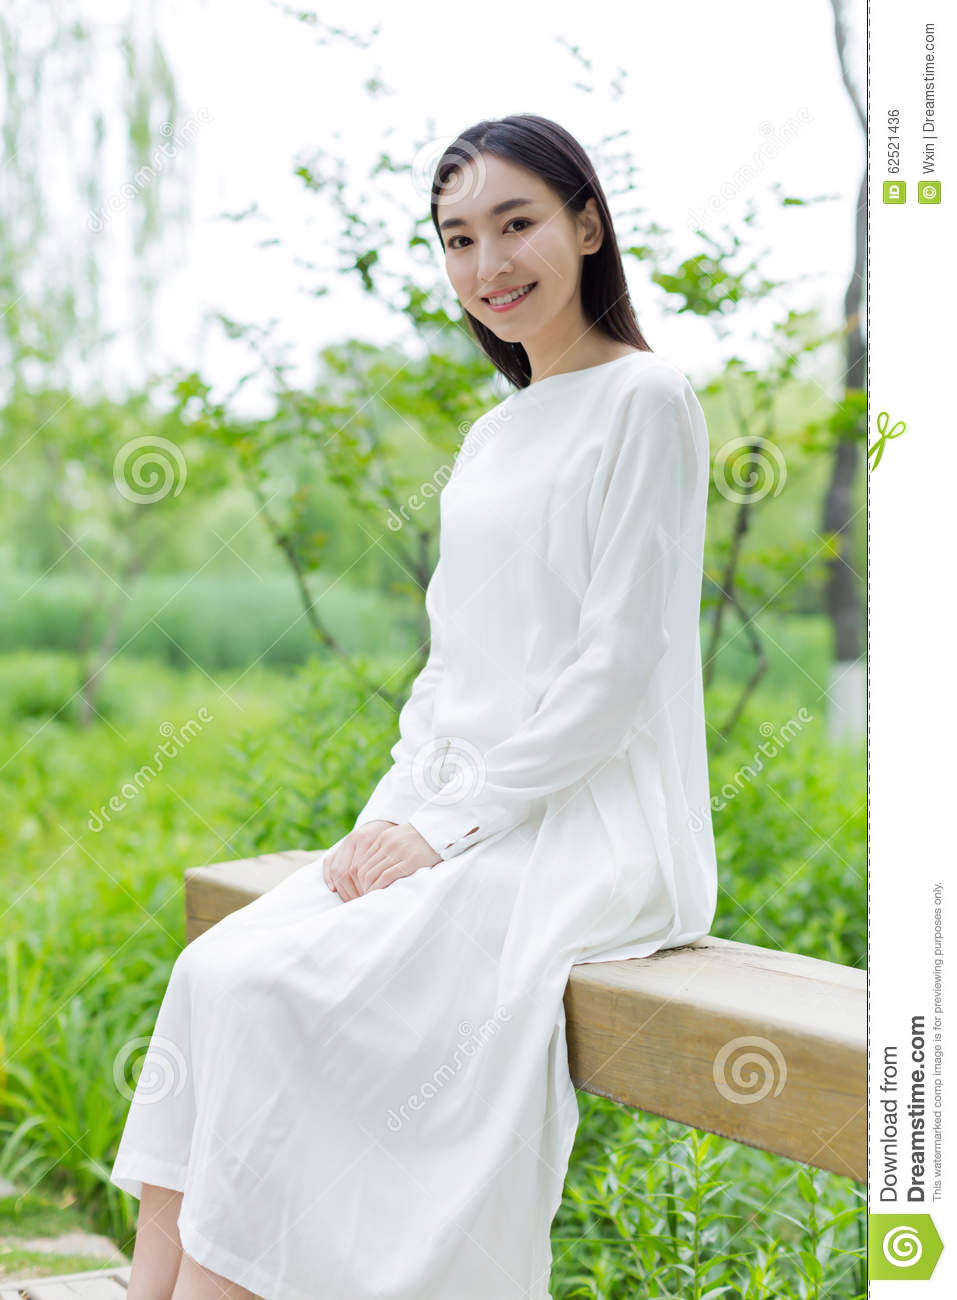 Chinese White Gown